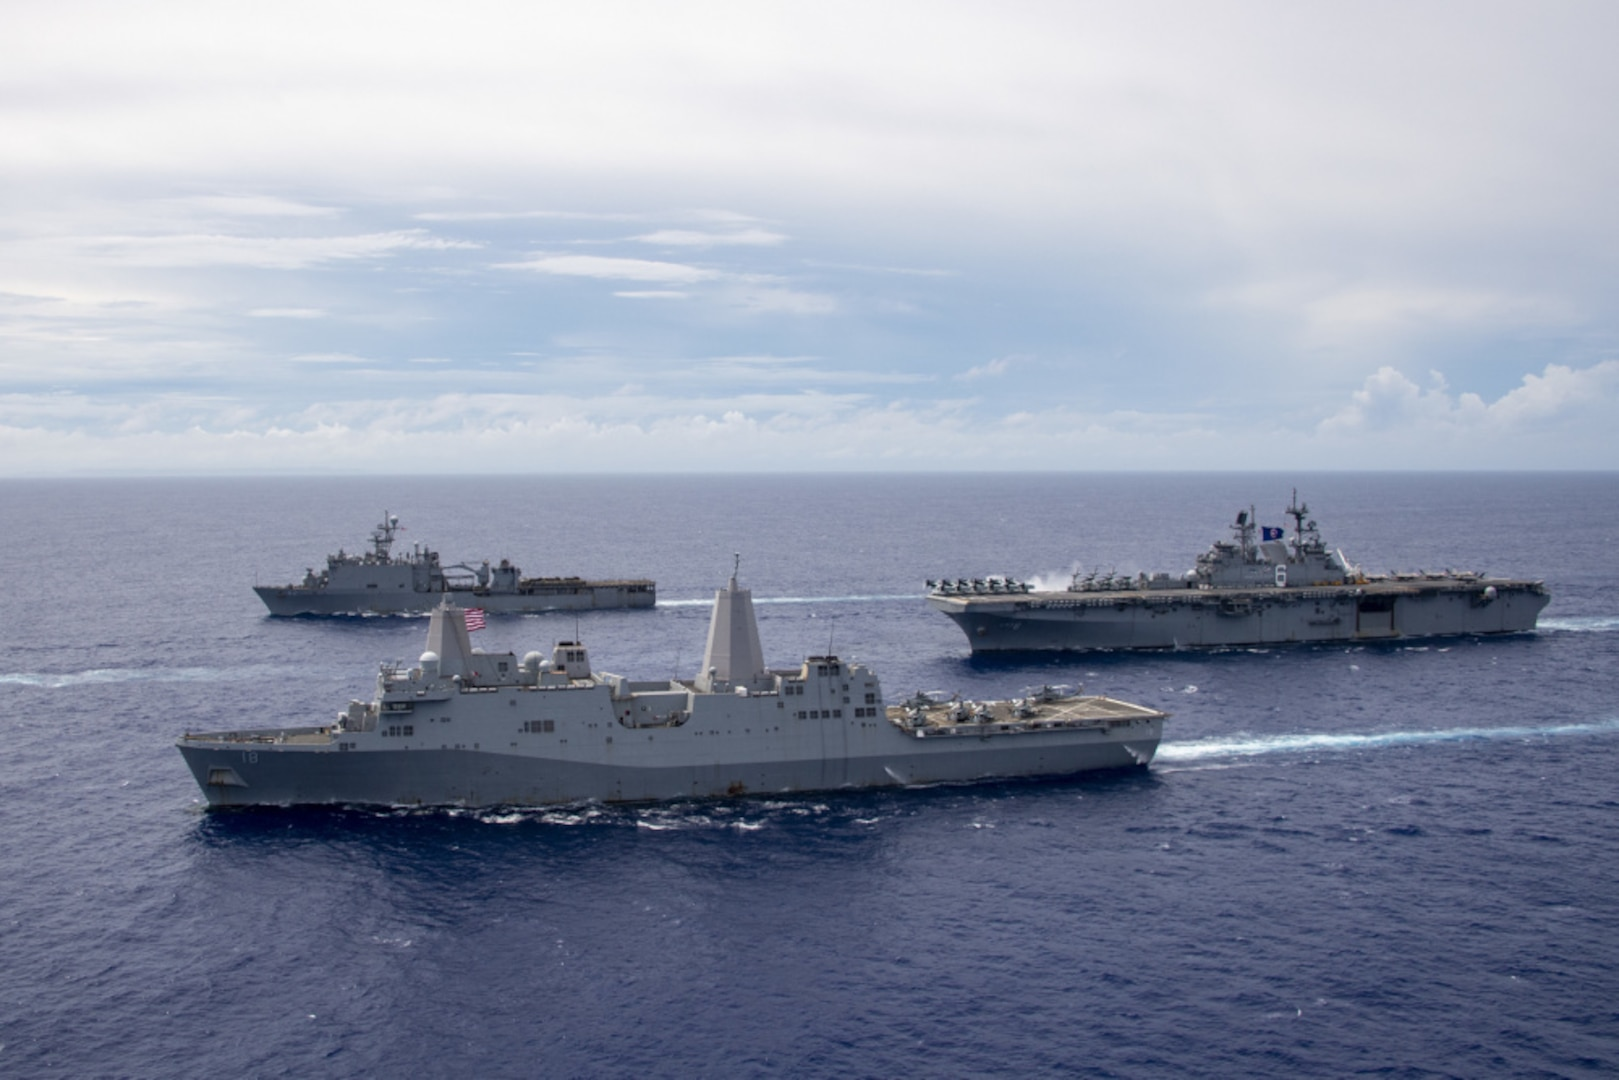 PHILIPPINE SEA (June 13, 2021) The America Amphibious Ready Group (ARG) sail in formation. Clockwise from right: USS America (LHA 6), USS New Orleans (LPD 18), USS Germantown (LSD 42). The America ARG, along with the 31st Marine Expeditionary Unit, is operating in the U.S. 7th Fleet area of operations to enhance interoperability with allies and partners and serve as a ready response force to defend peace and stability in the Indo-Pacific region.